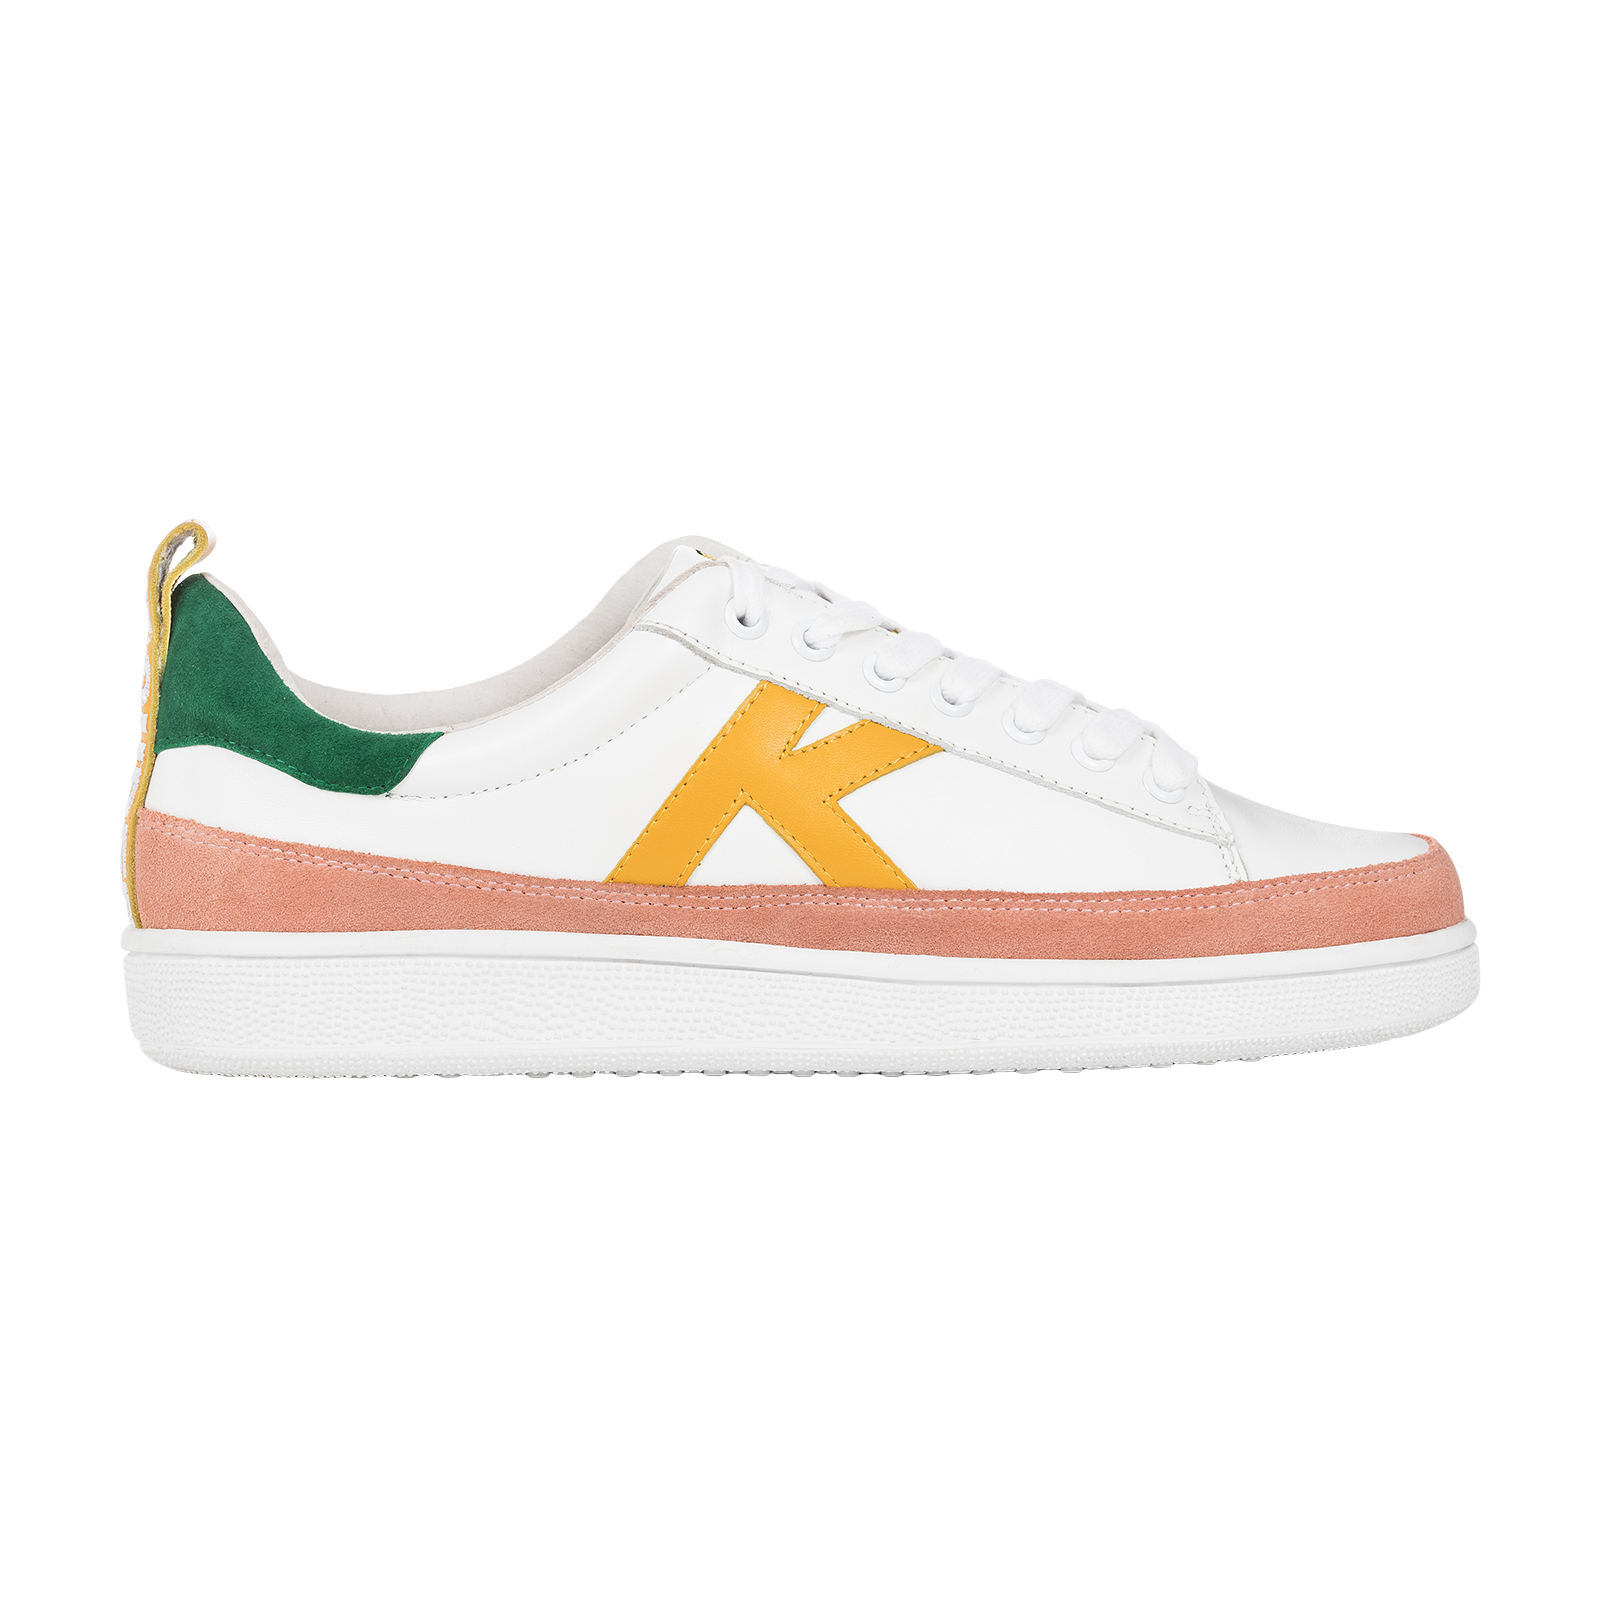 Sneaker product image